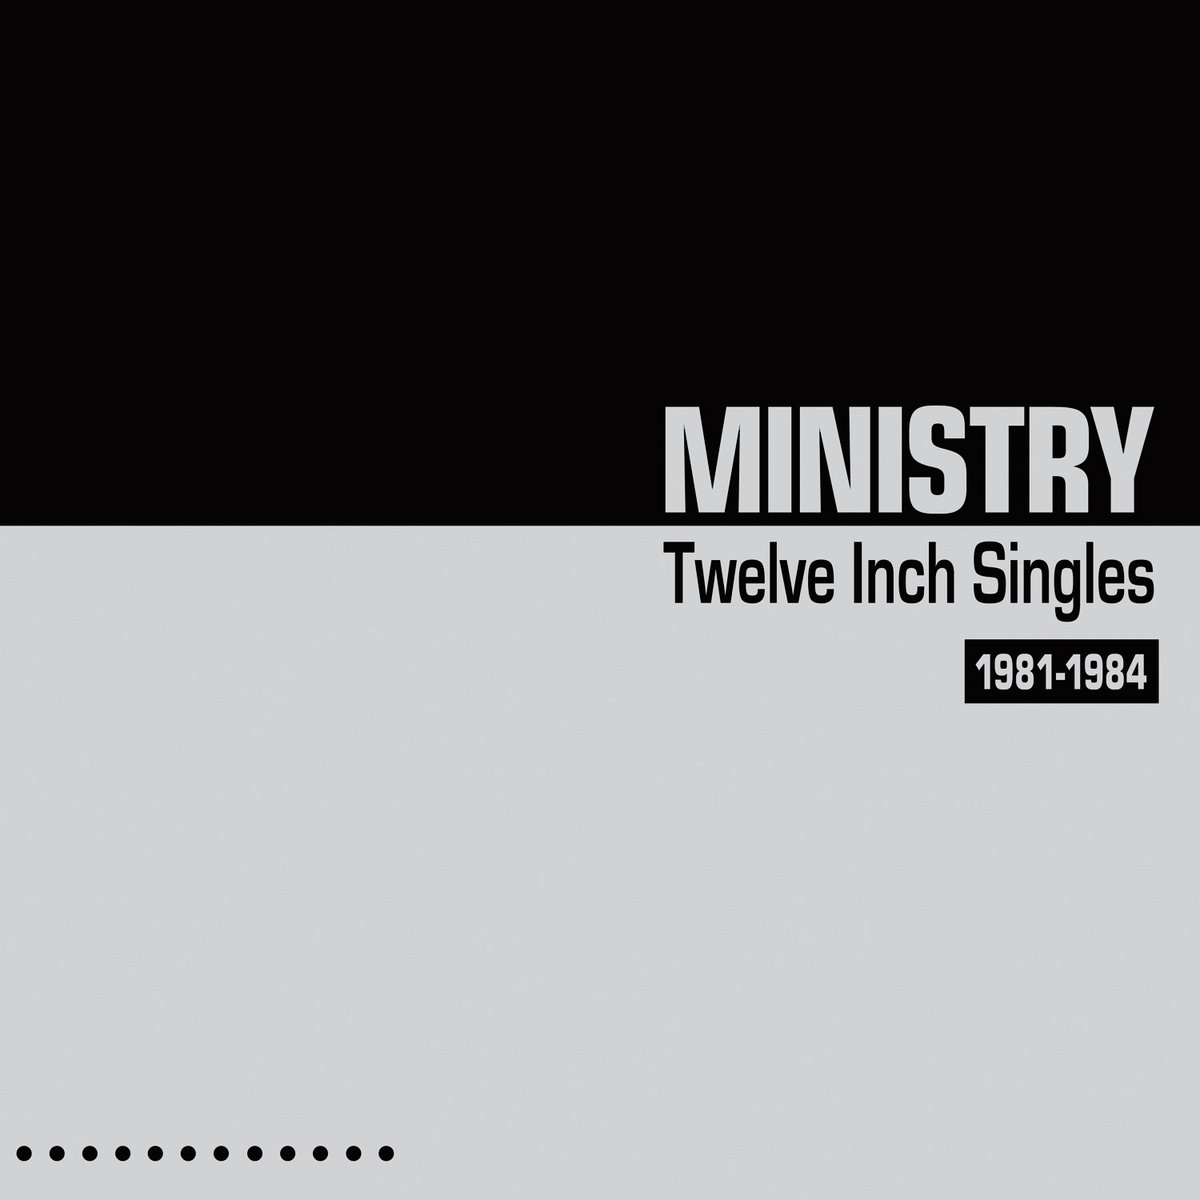 Twelve Inch Singles - Expanded Edition | Ministry